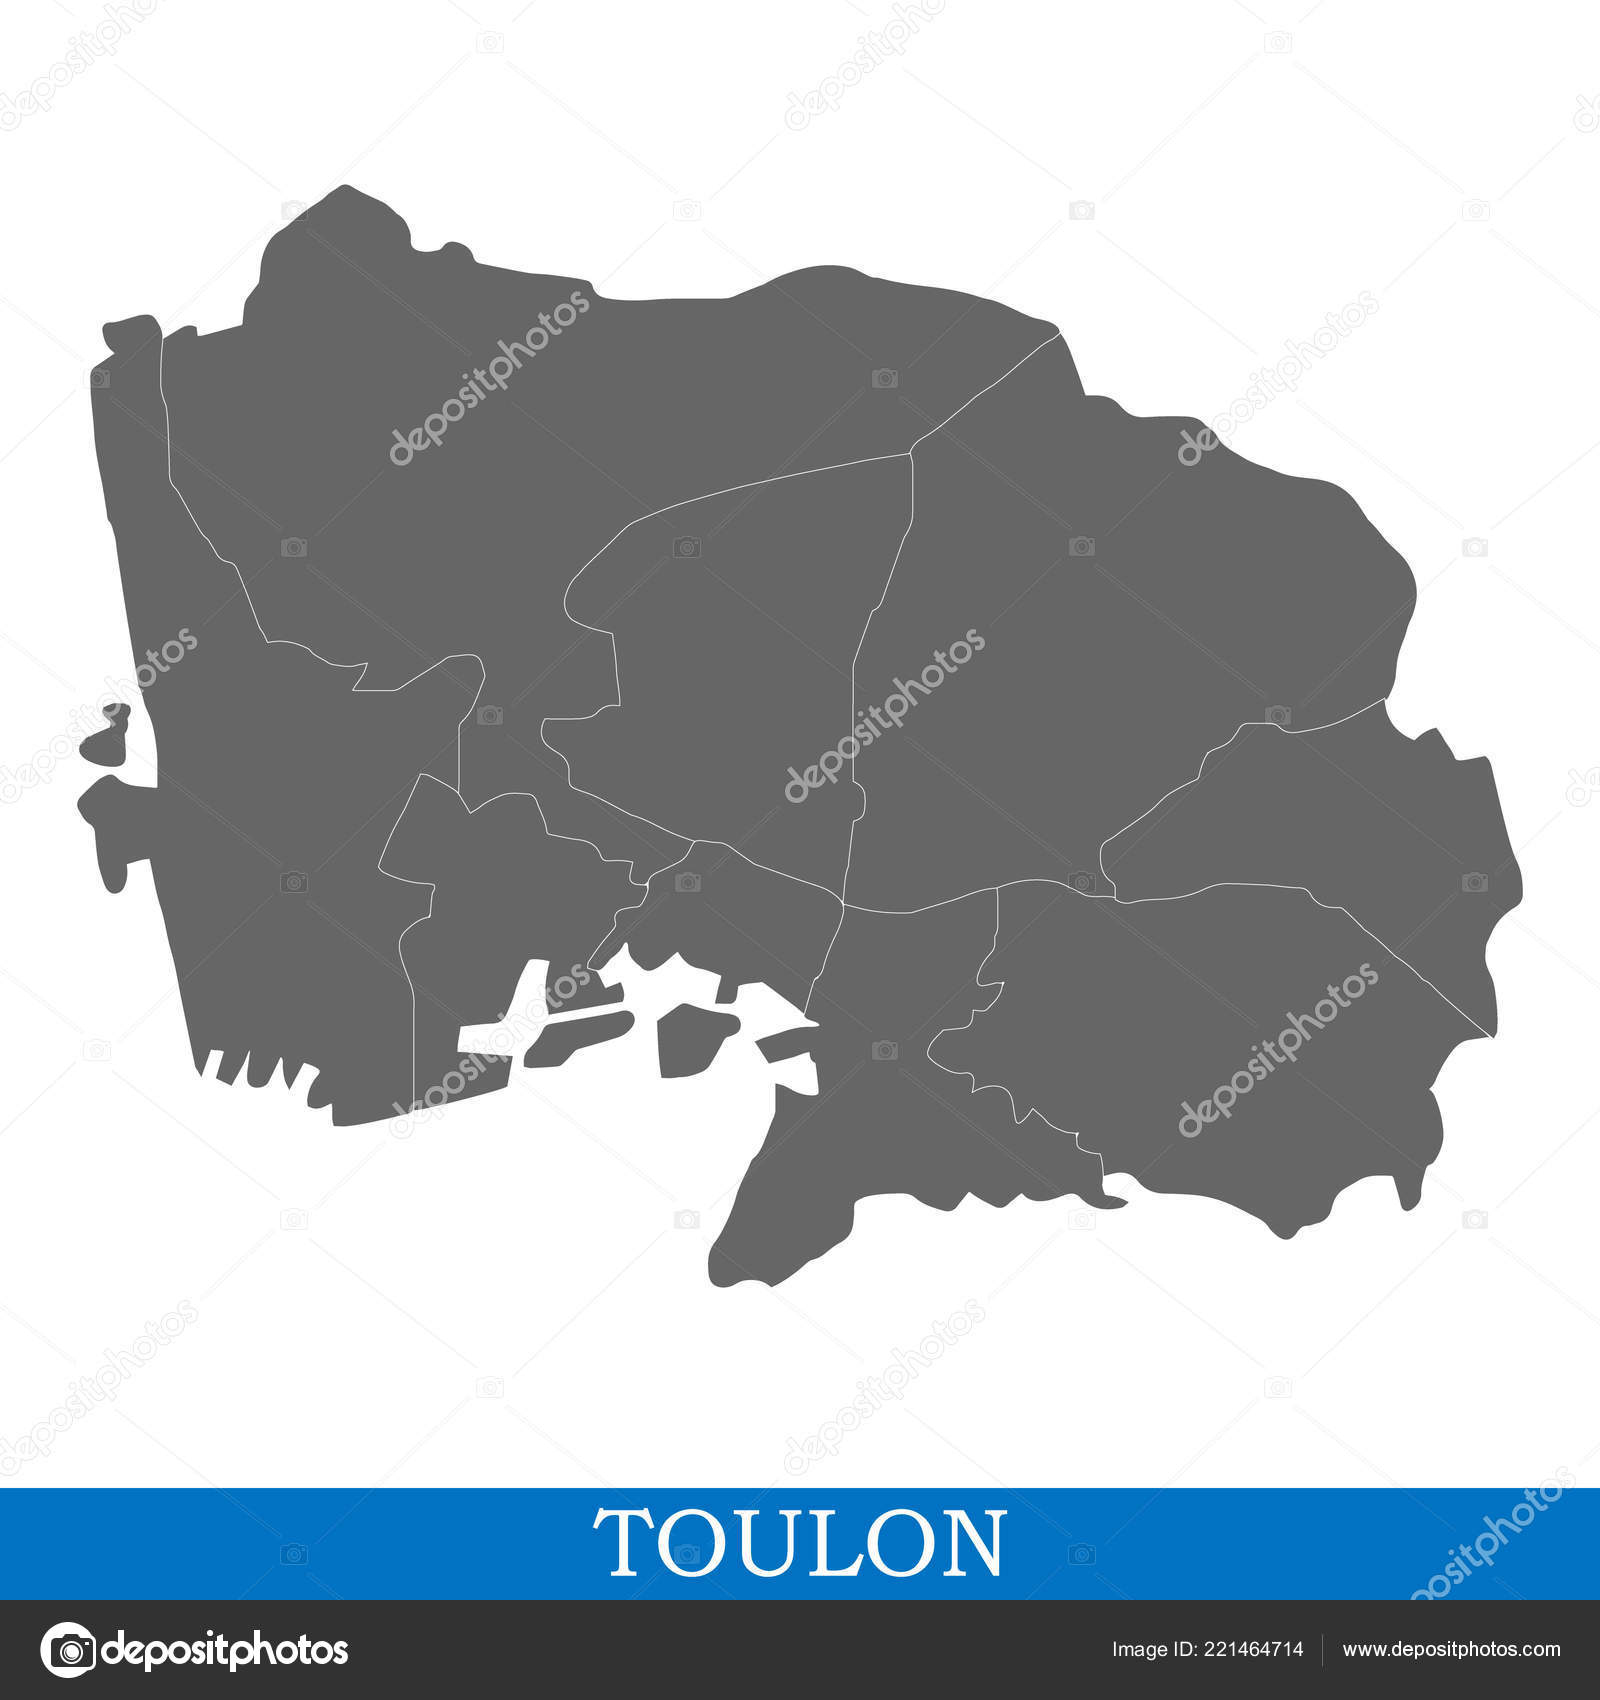 High Quality Map Toulon City France Borders Districts ...